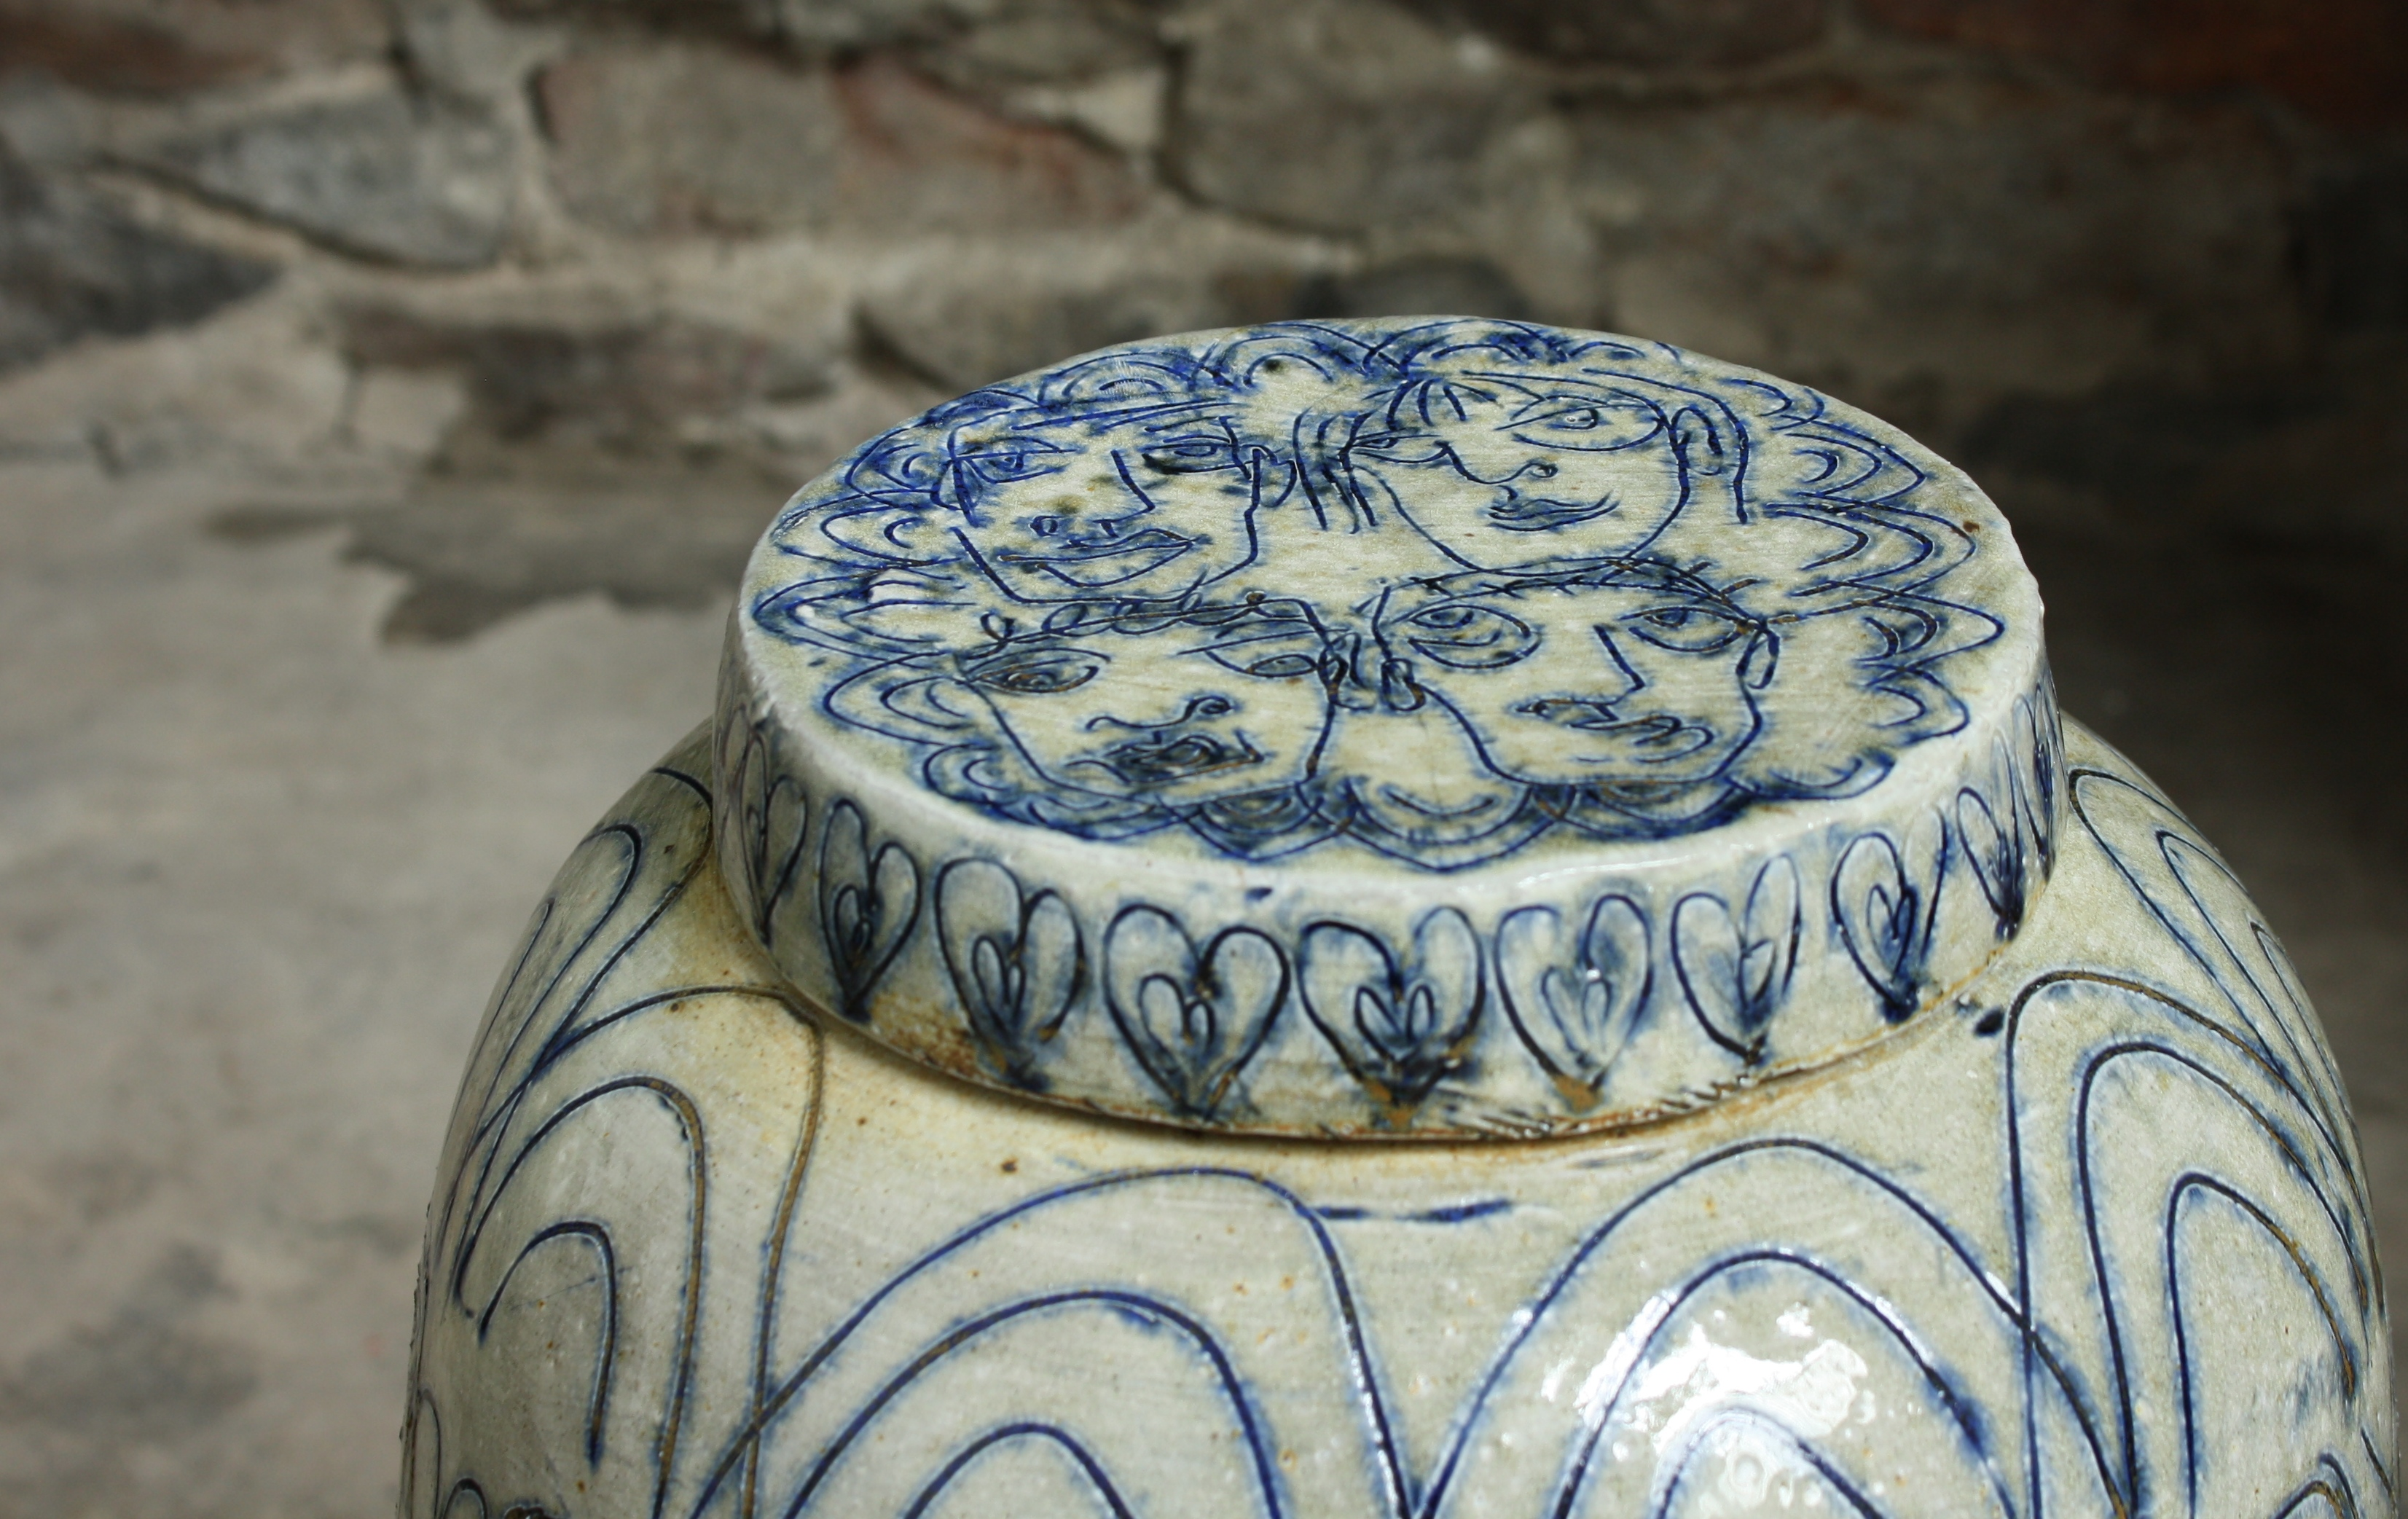 Lidded Vessel, detail